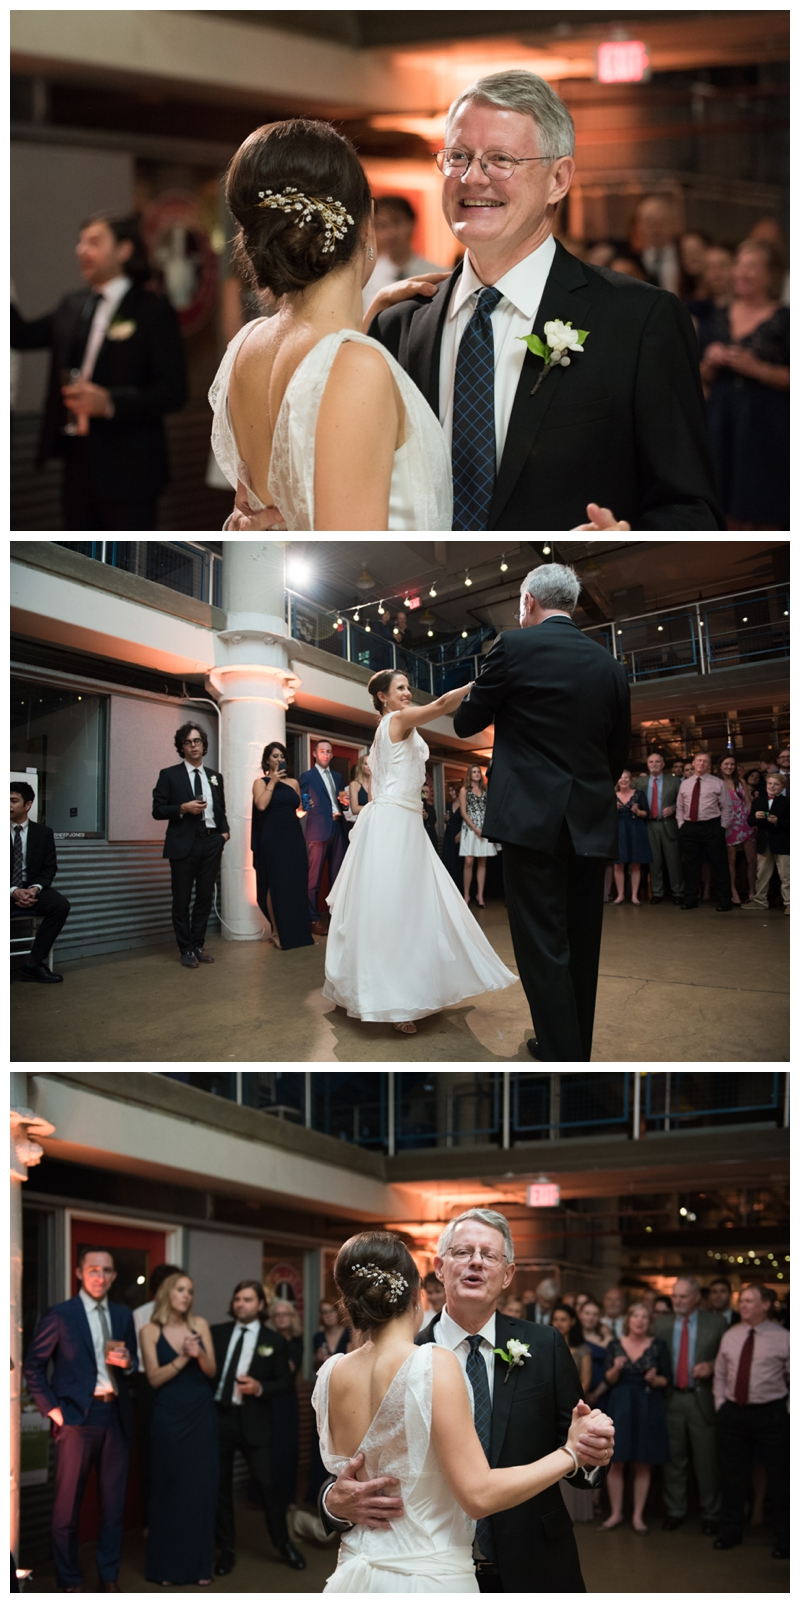 Wedding in Old Town Alexandria Virginia at the Torpedo Factory Art Center by Rachael Foster Photography_0094.jpg